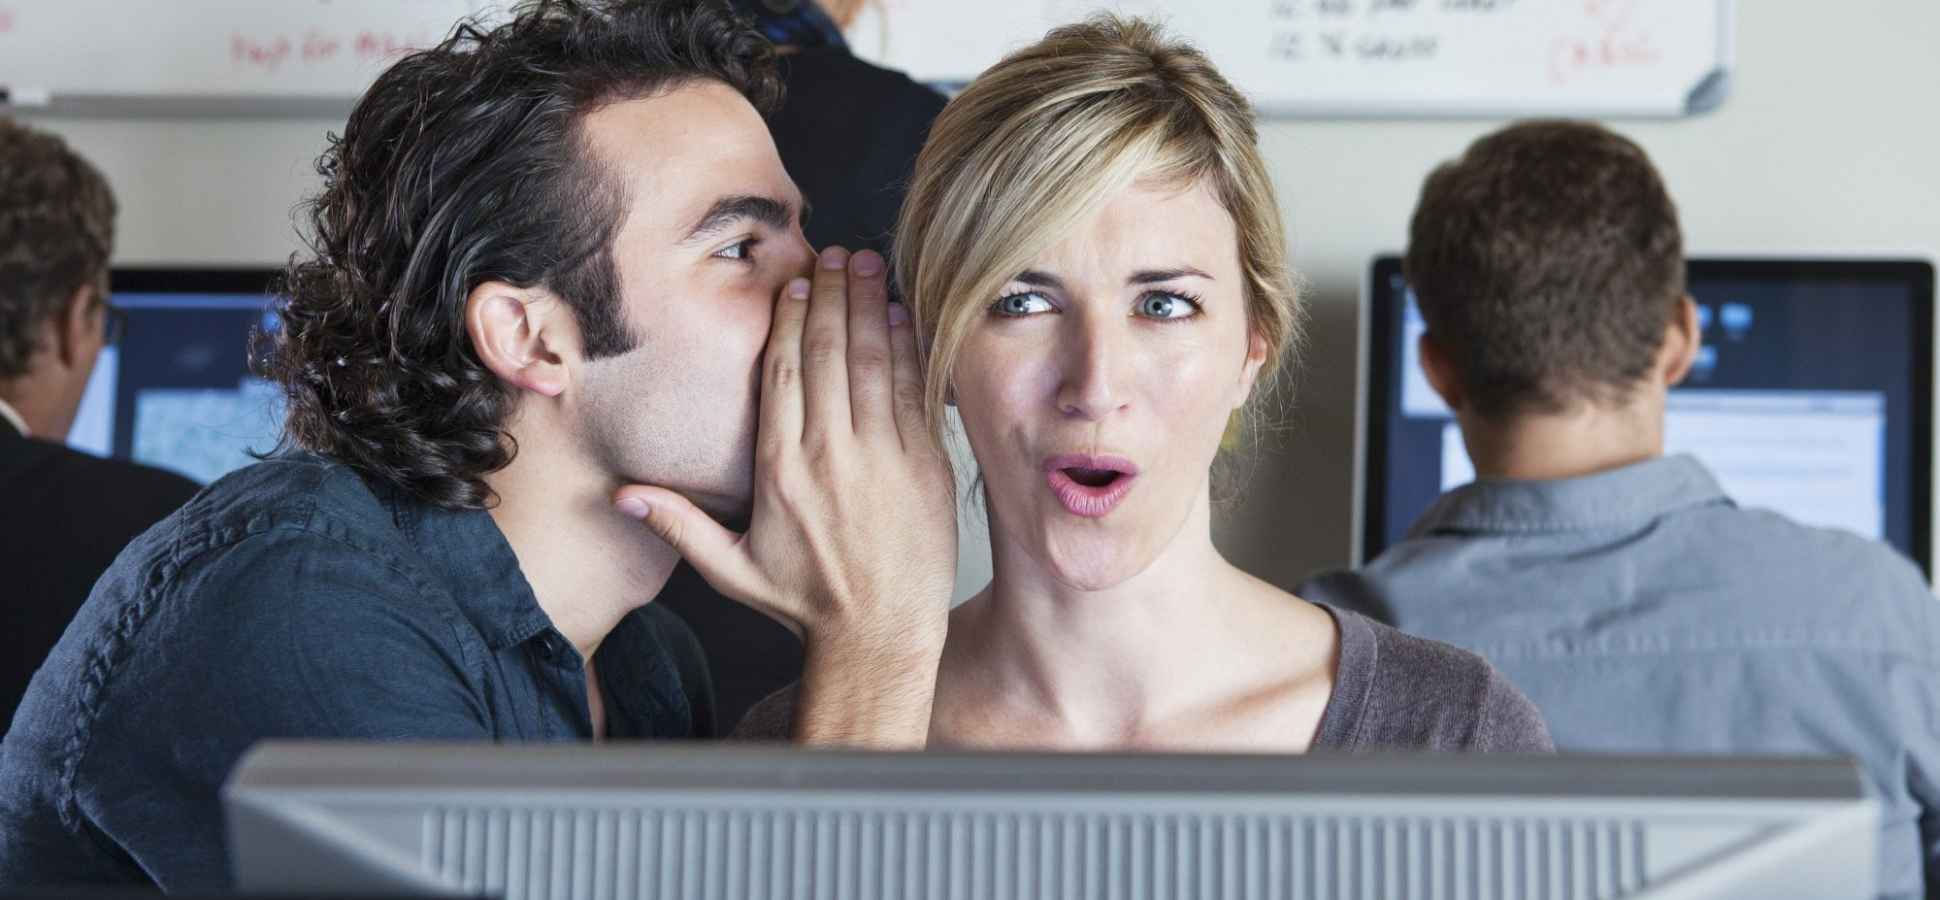 6 Sure Signs That Your Co-Workers Are Toxic